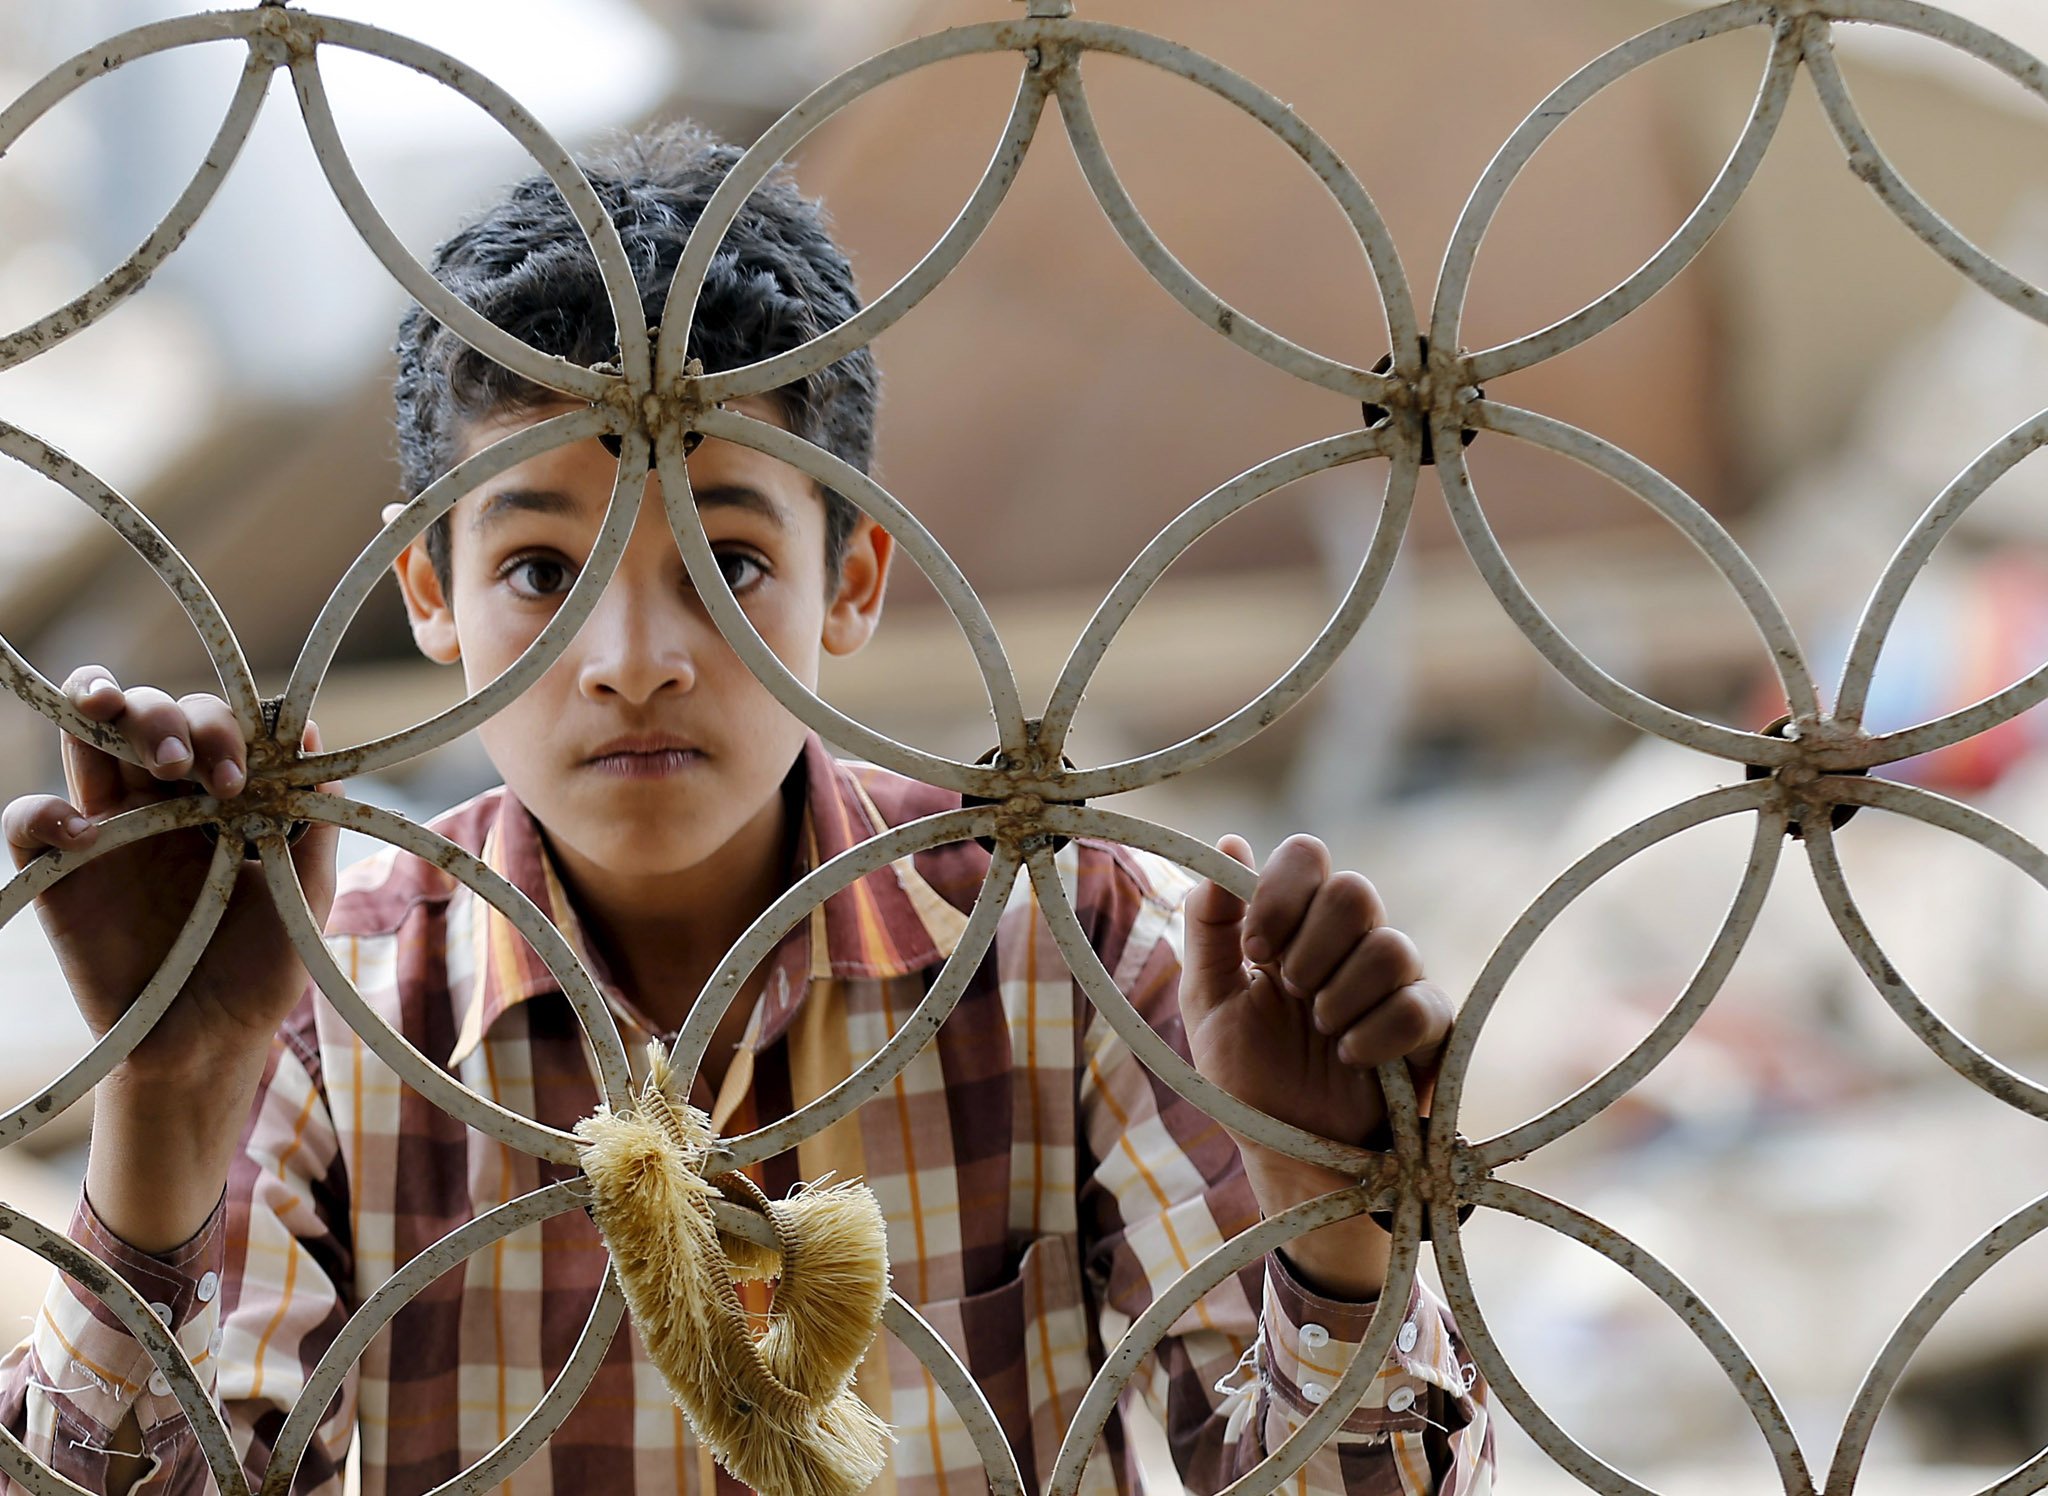 A boy looks through the window grills of a house that was damaged by a Saudi-led air strike in Yemen's capital Sanaa...A boy looks through the window grills of a house that was damaged by a Saudi-led air strike in Yemen's capital Sanaa August 26, 2015. Yemeni army units allied to the Houthi militia fired a ballistic missile toward southern Saudi Arabia on Wednesday, the group's TV channel said, as combat between the kingdom and the Iran-allied group has intensified. REUTERS/Khaled Abdullah